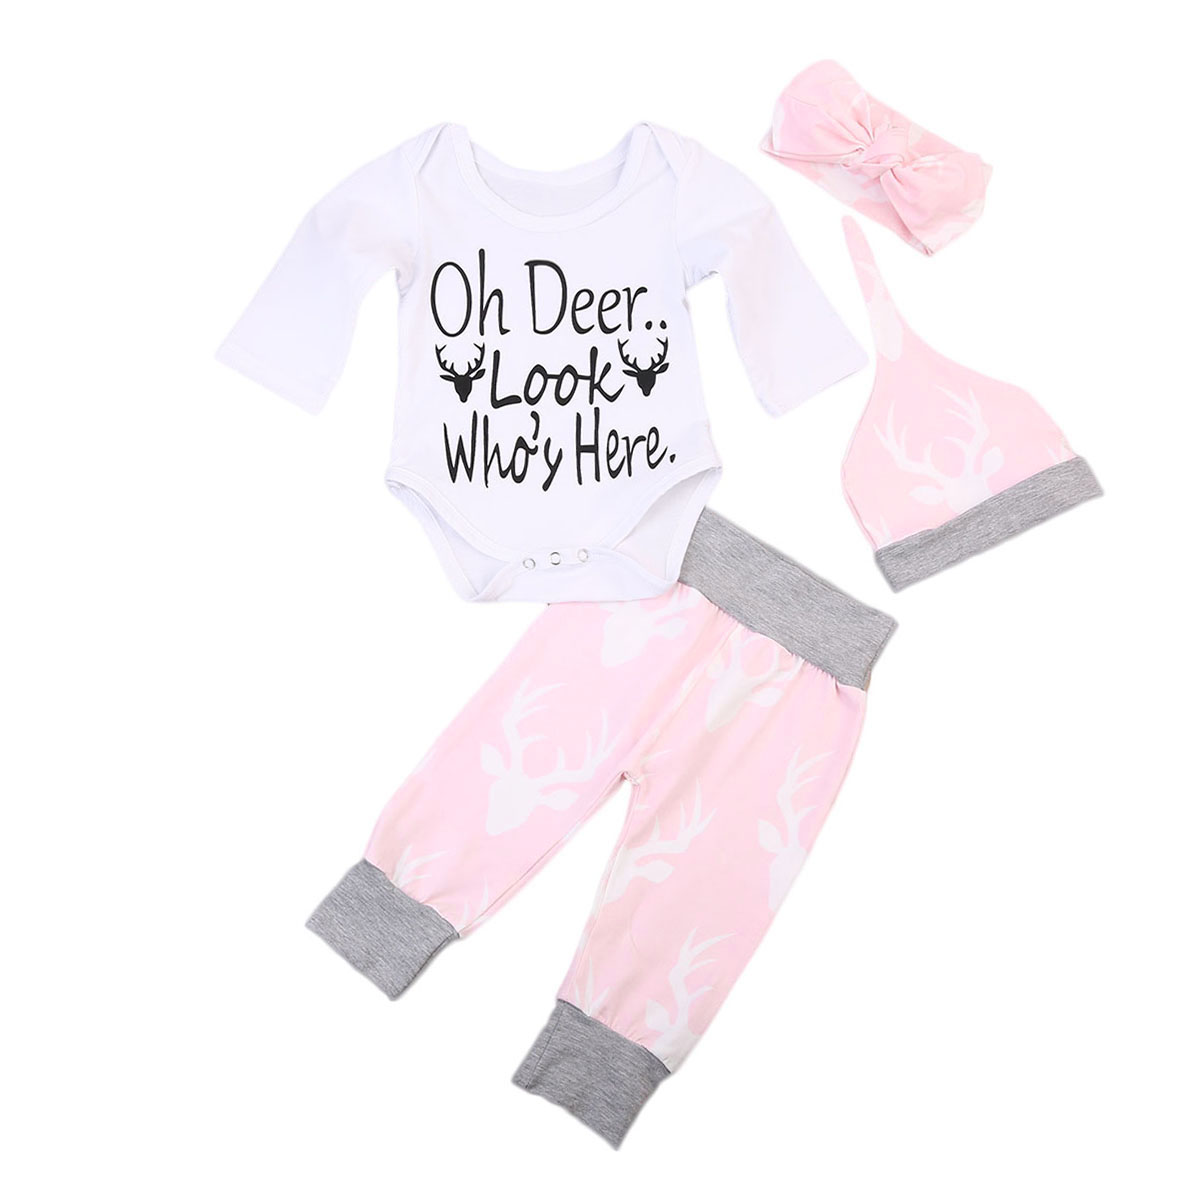 4pcs Set Newborn Baby Boy Girls Clothes Cotton Long Sleeve Tops Romper+Long Pants Outfits 0-18M